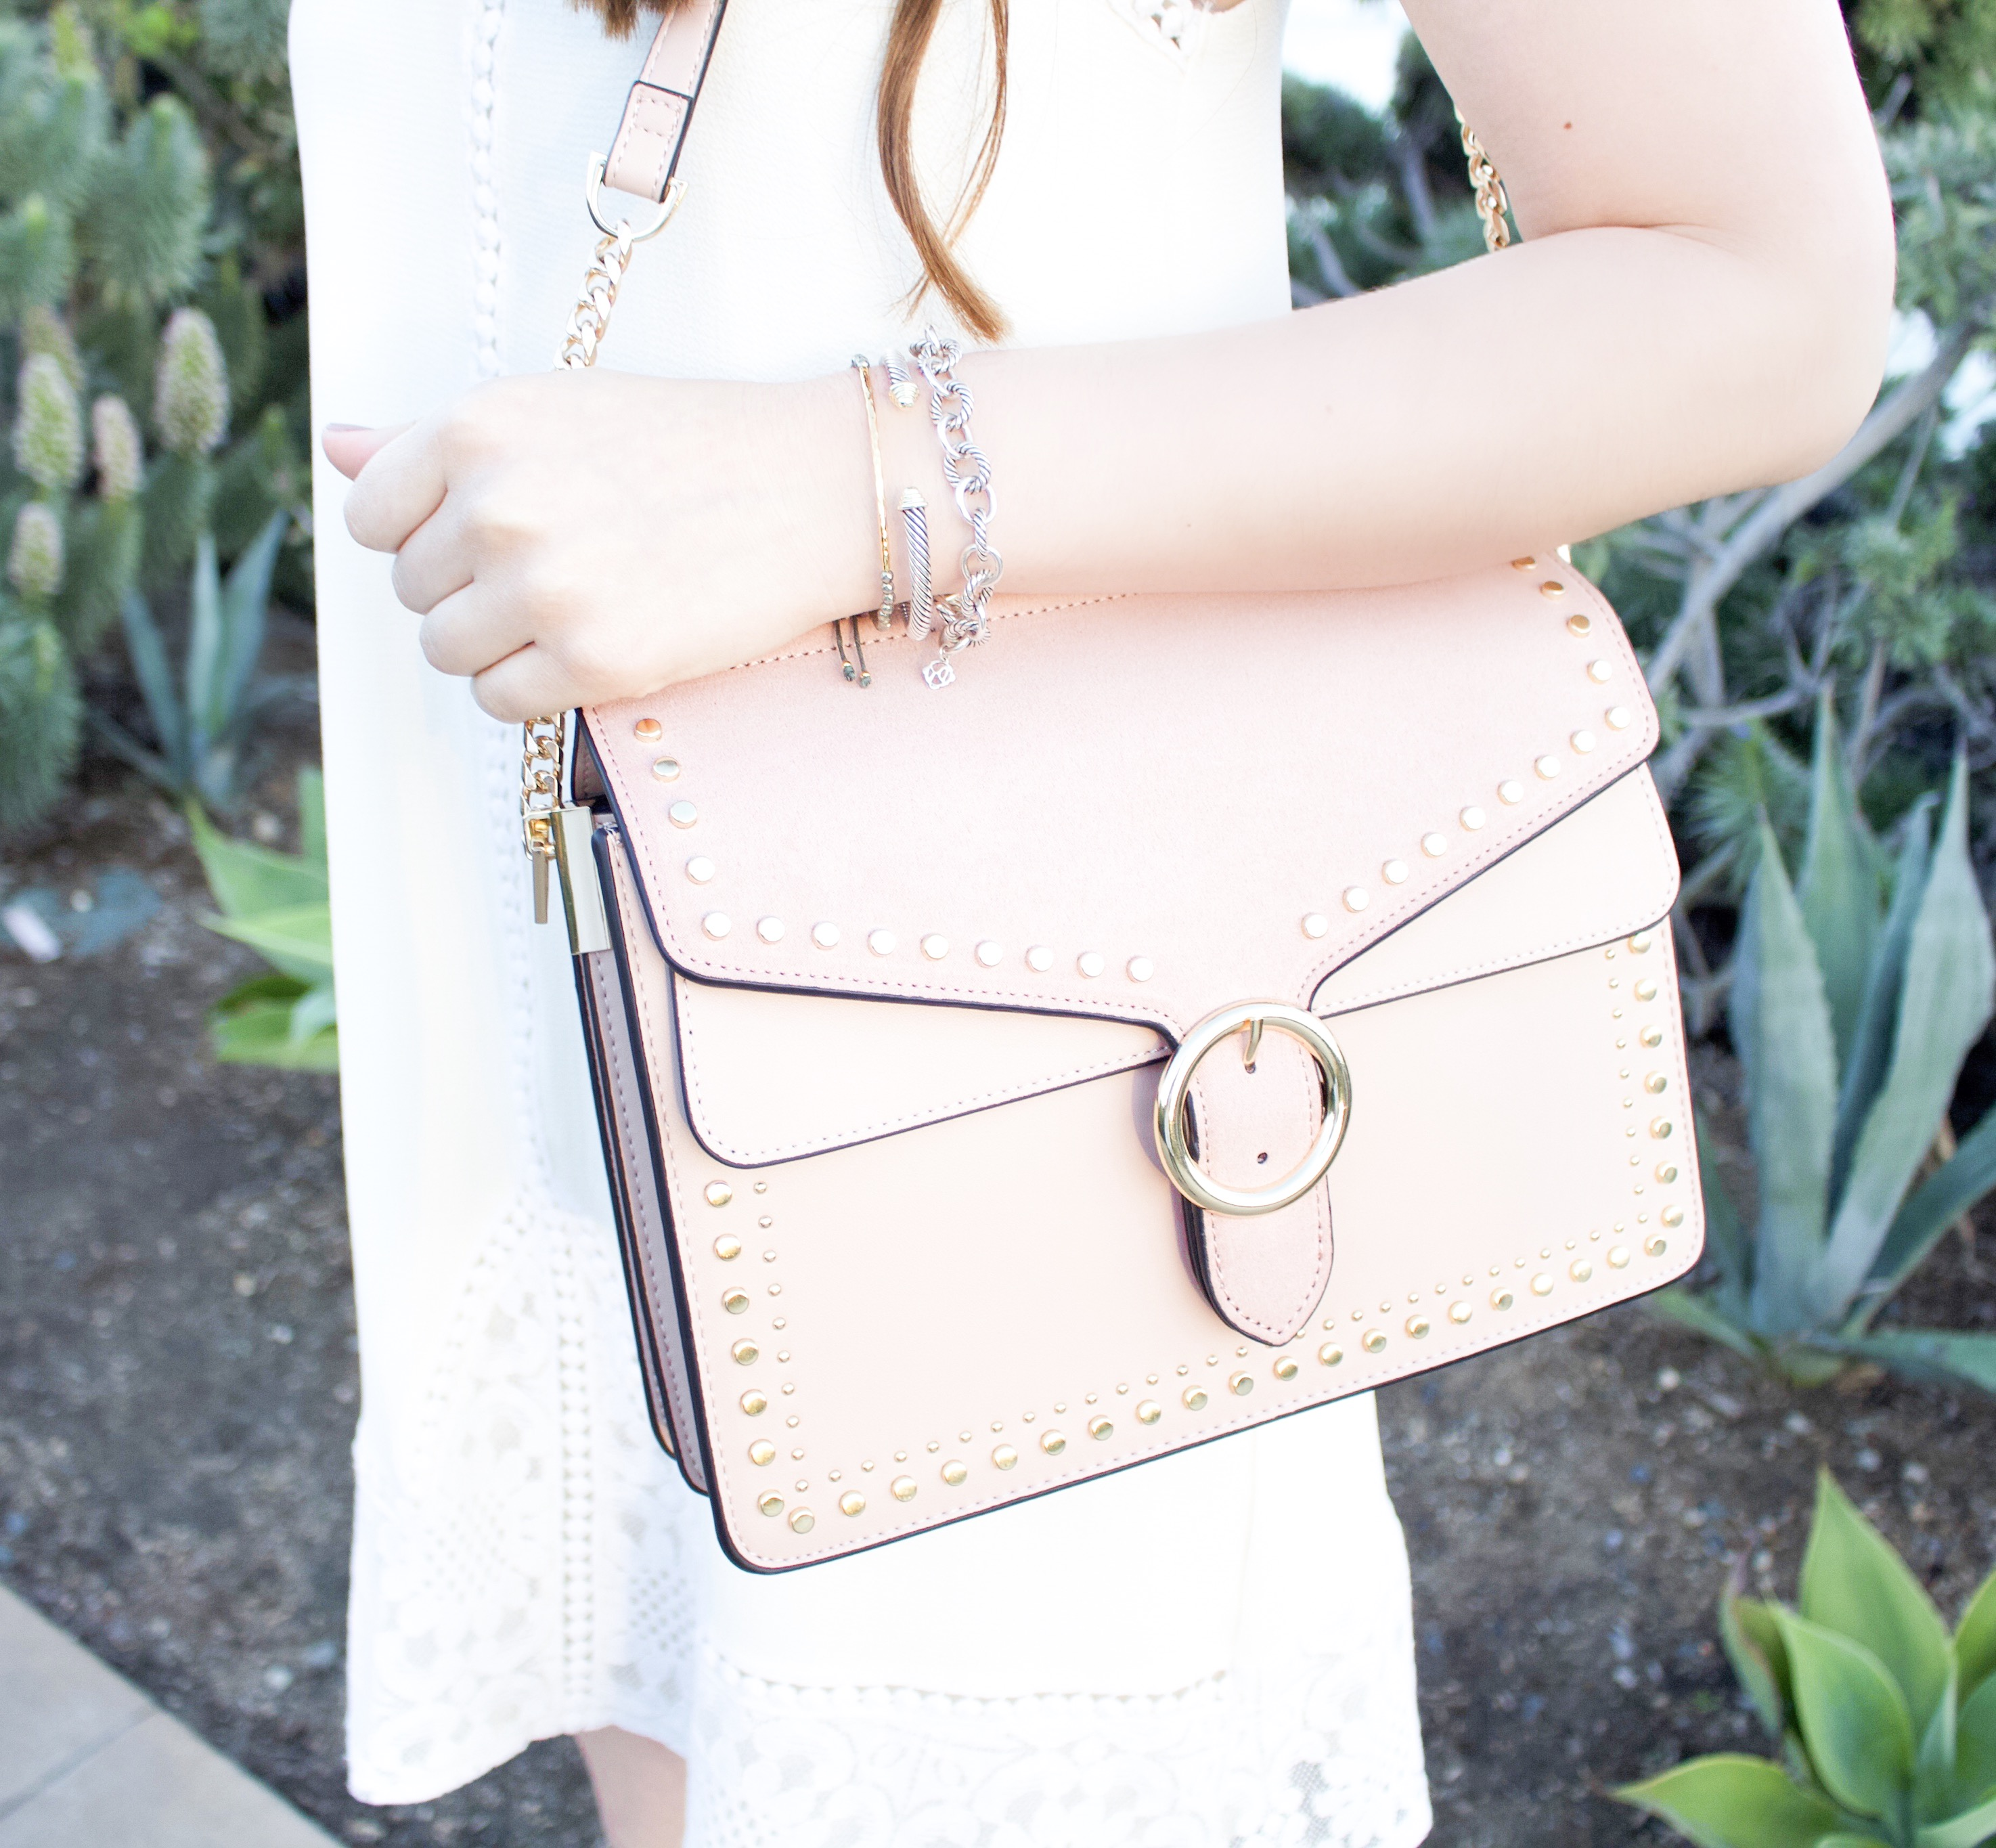 Topshop blush pink bag